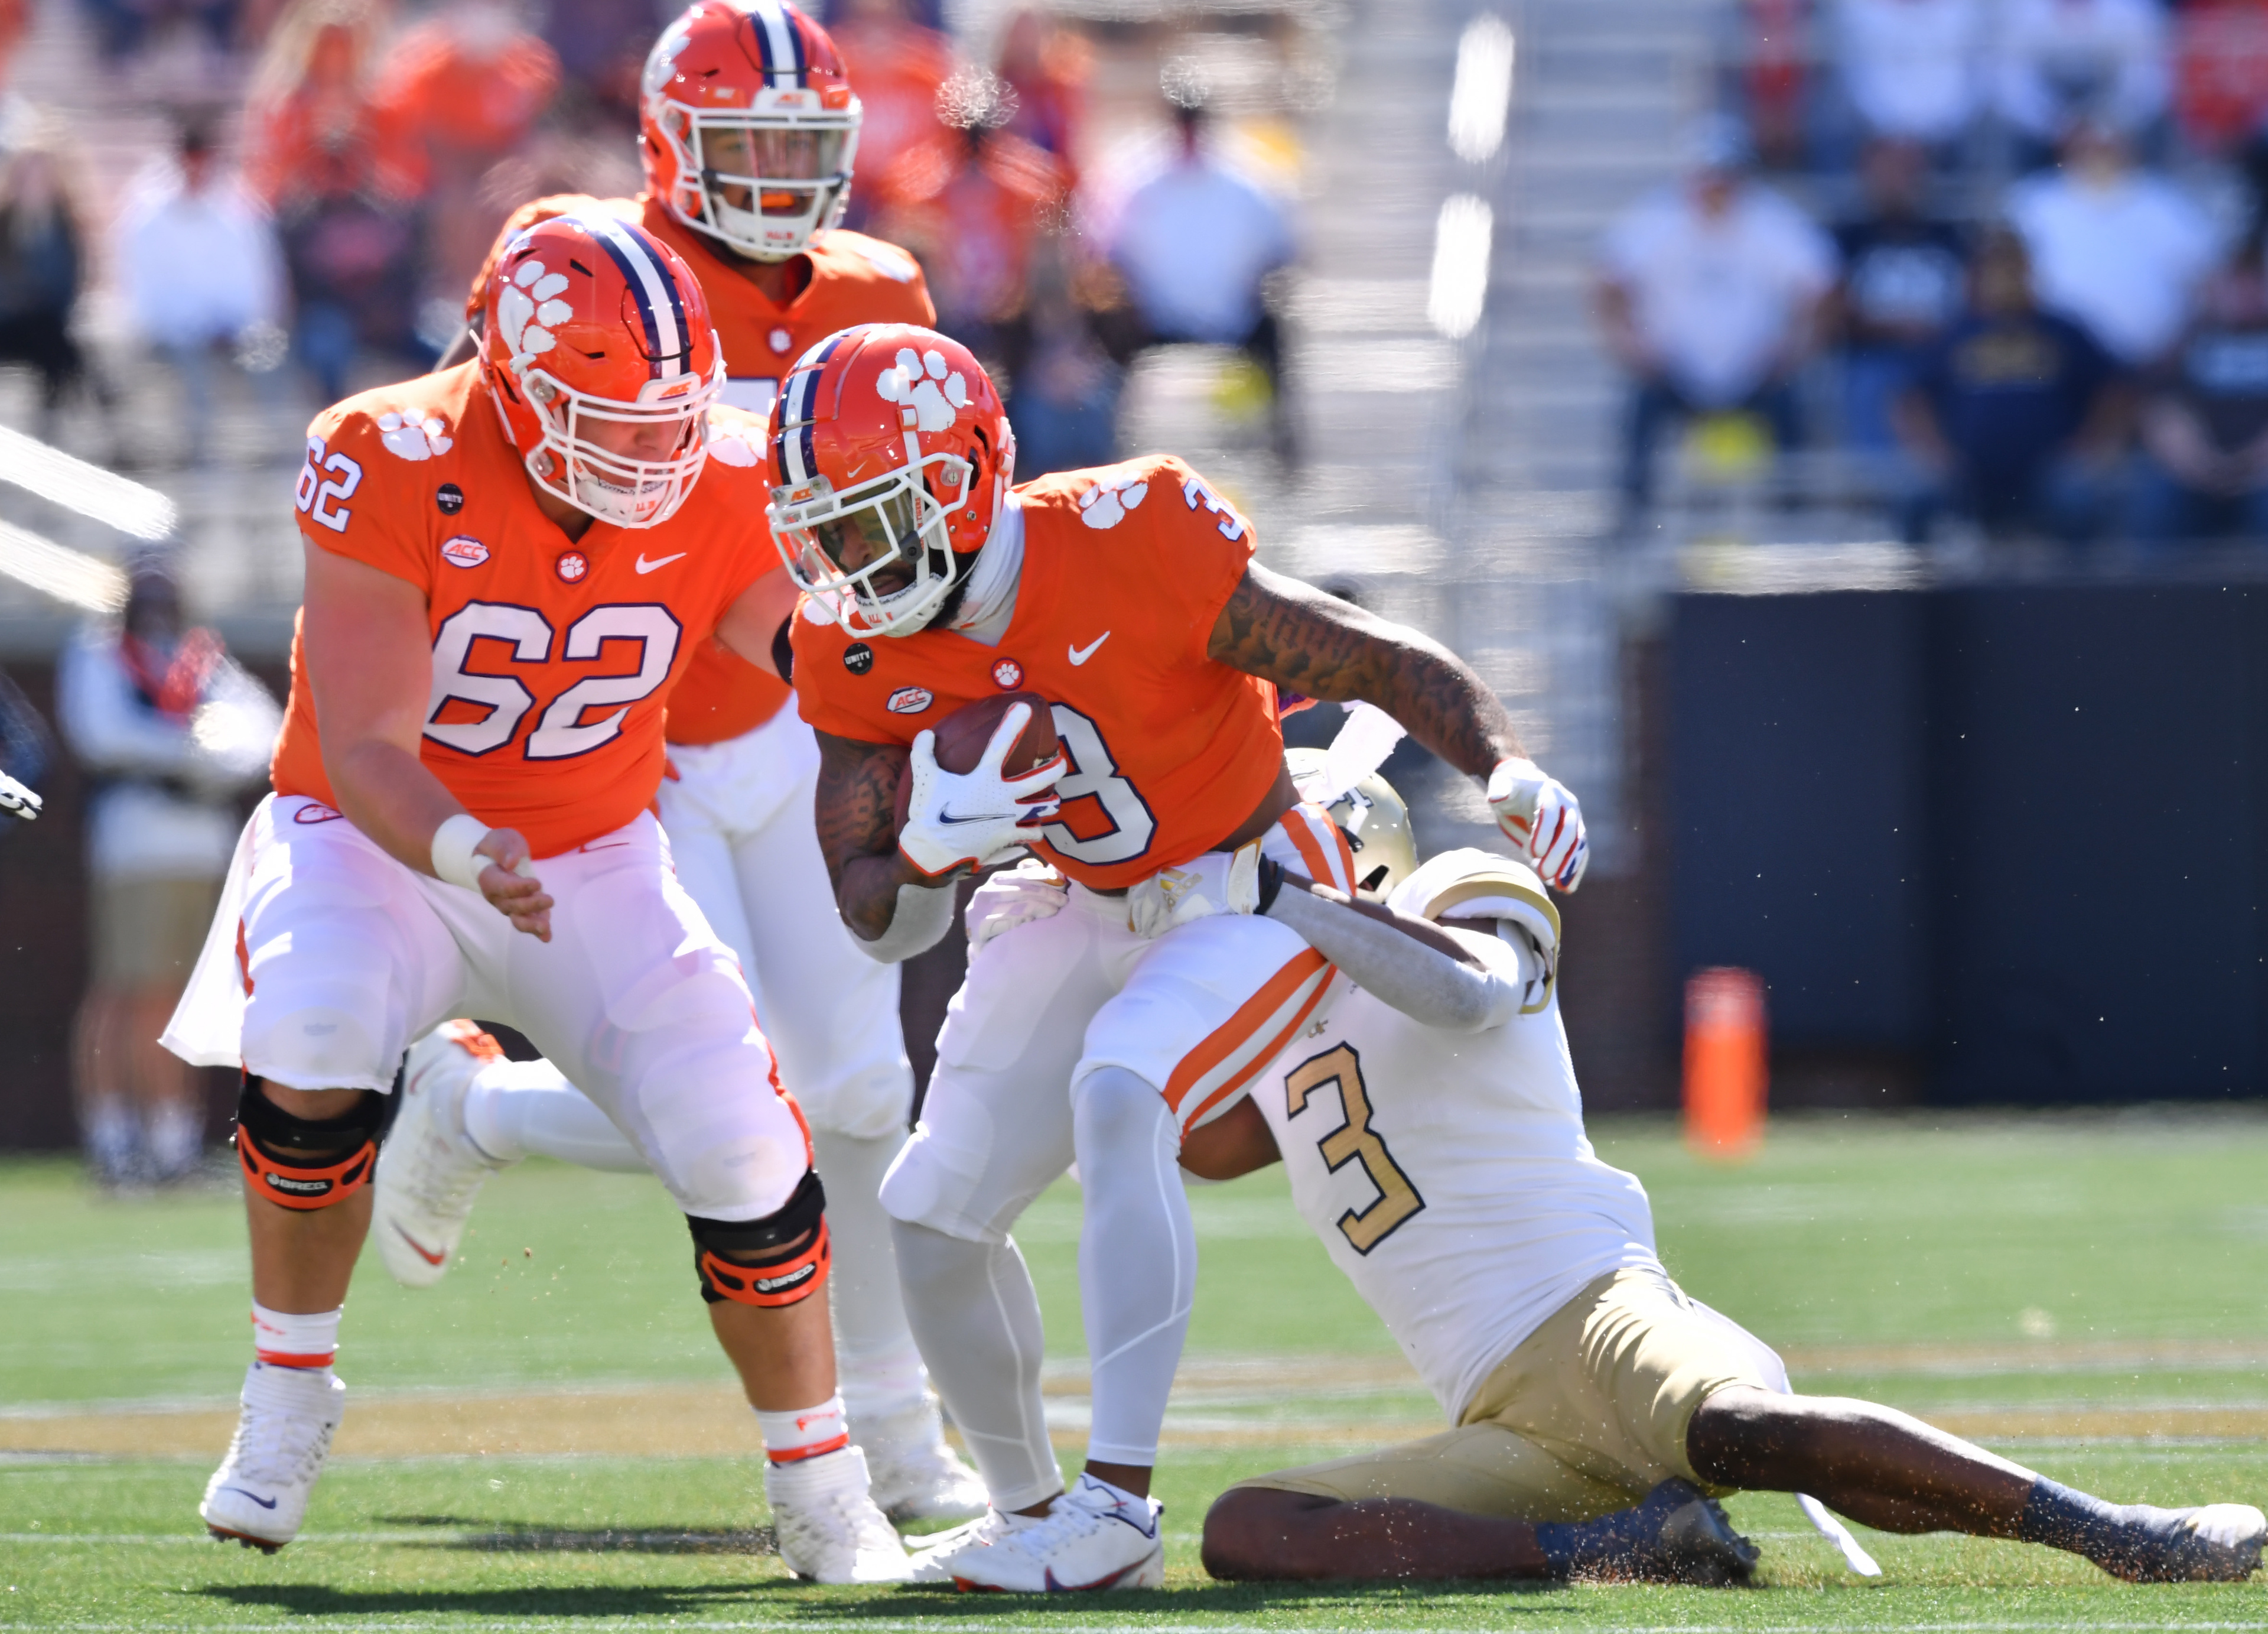 October 17, 2020 Atlanta - Clemson's wide receiver Amari Rodgers (3) gets tackled from behind by Georgia Tech's defensive back Tre Swilling (3) during the second half of an NCAA college football game at Georgia Tech's Bobby Dodd Stadium in Atlanta on Saturday, October 17, 2020. Clemson won 73-7 over the Georgia Tech. (Hyosub Shin / Hyosub.Shin@ajc.com)